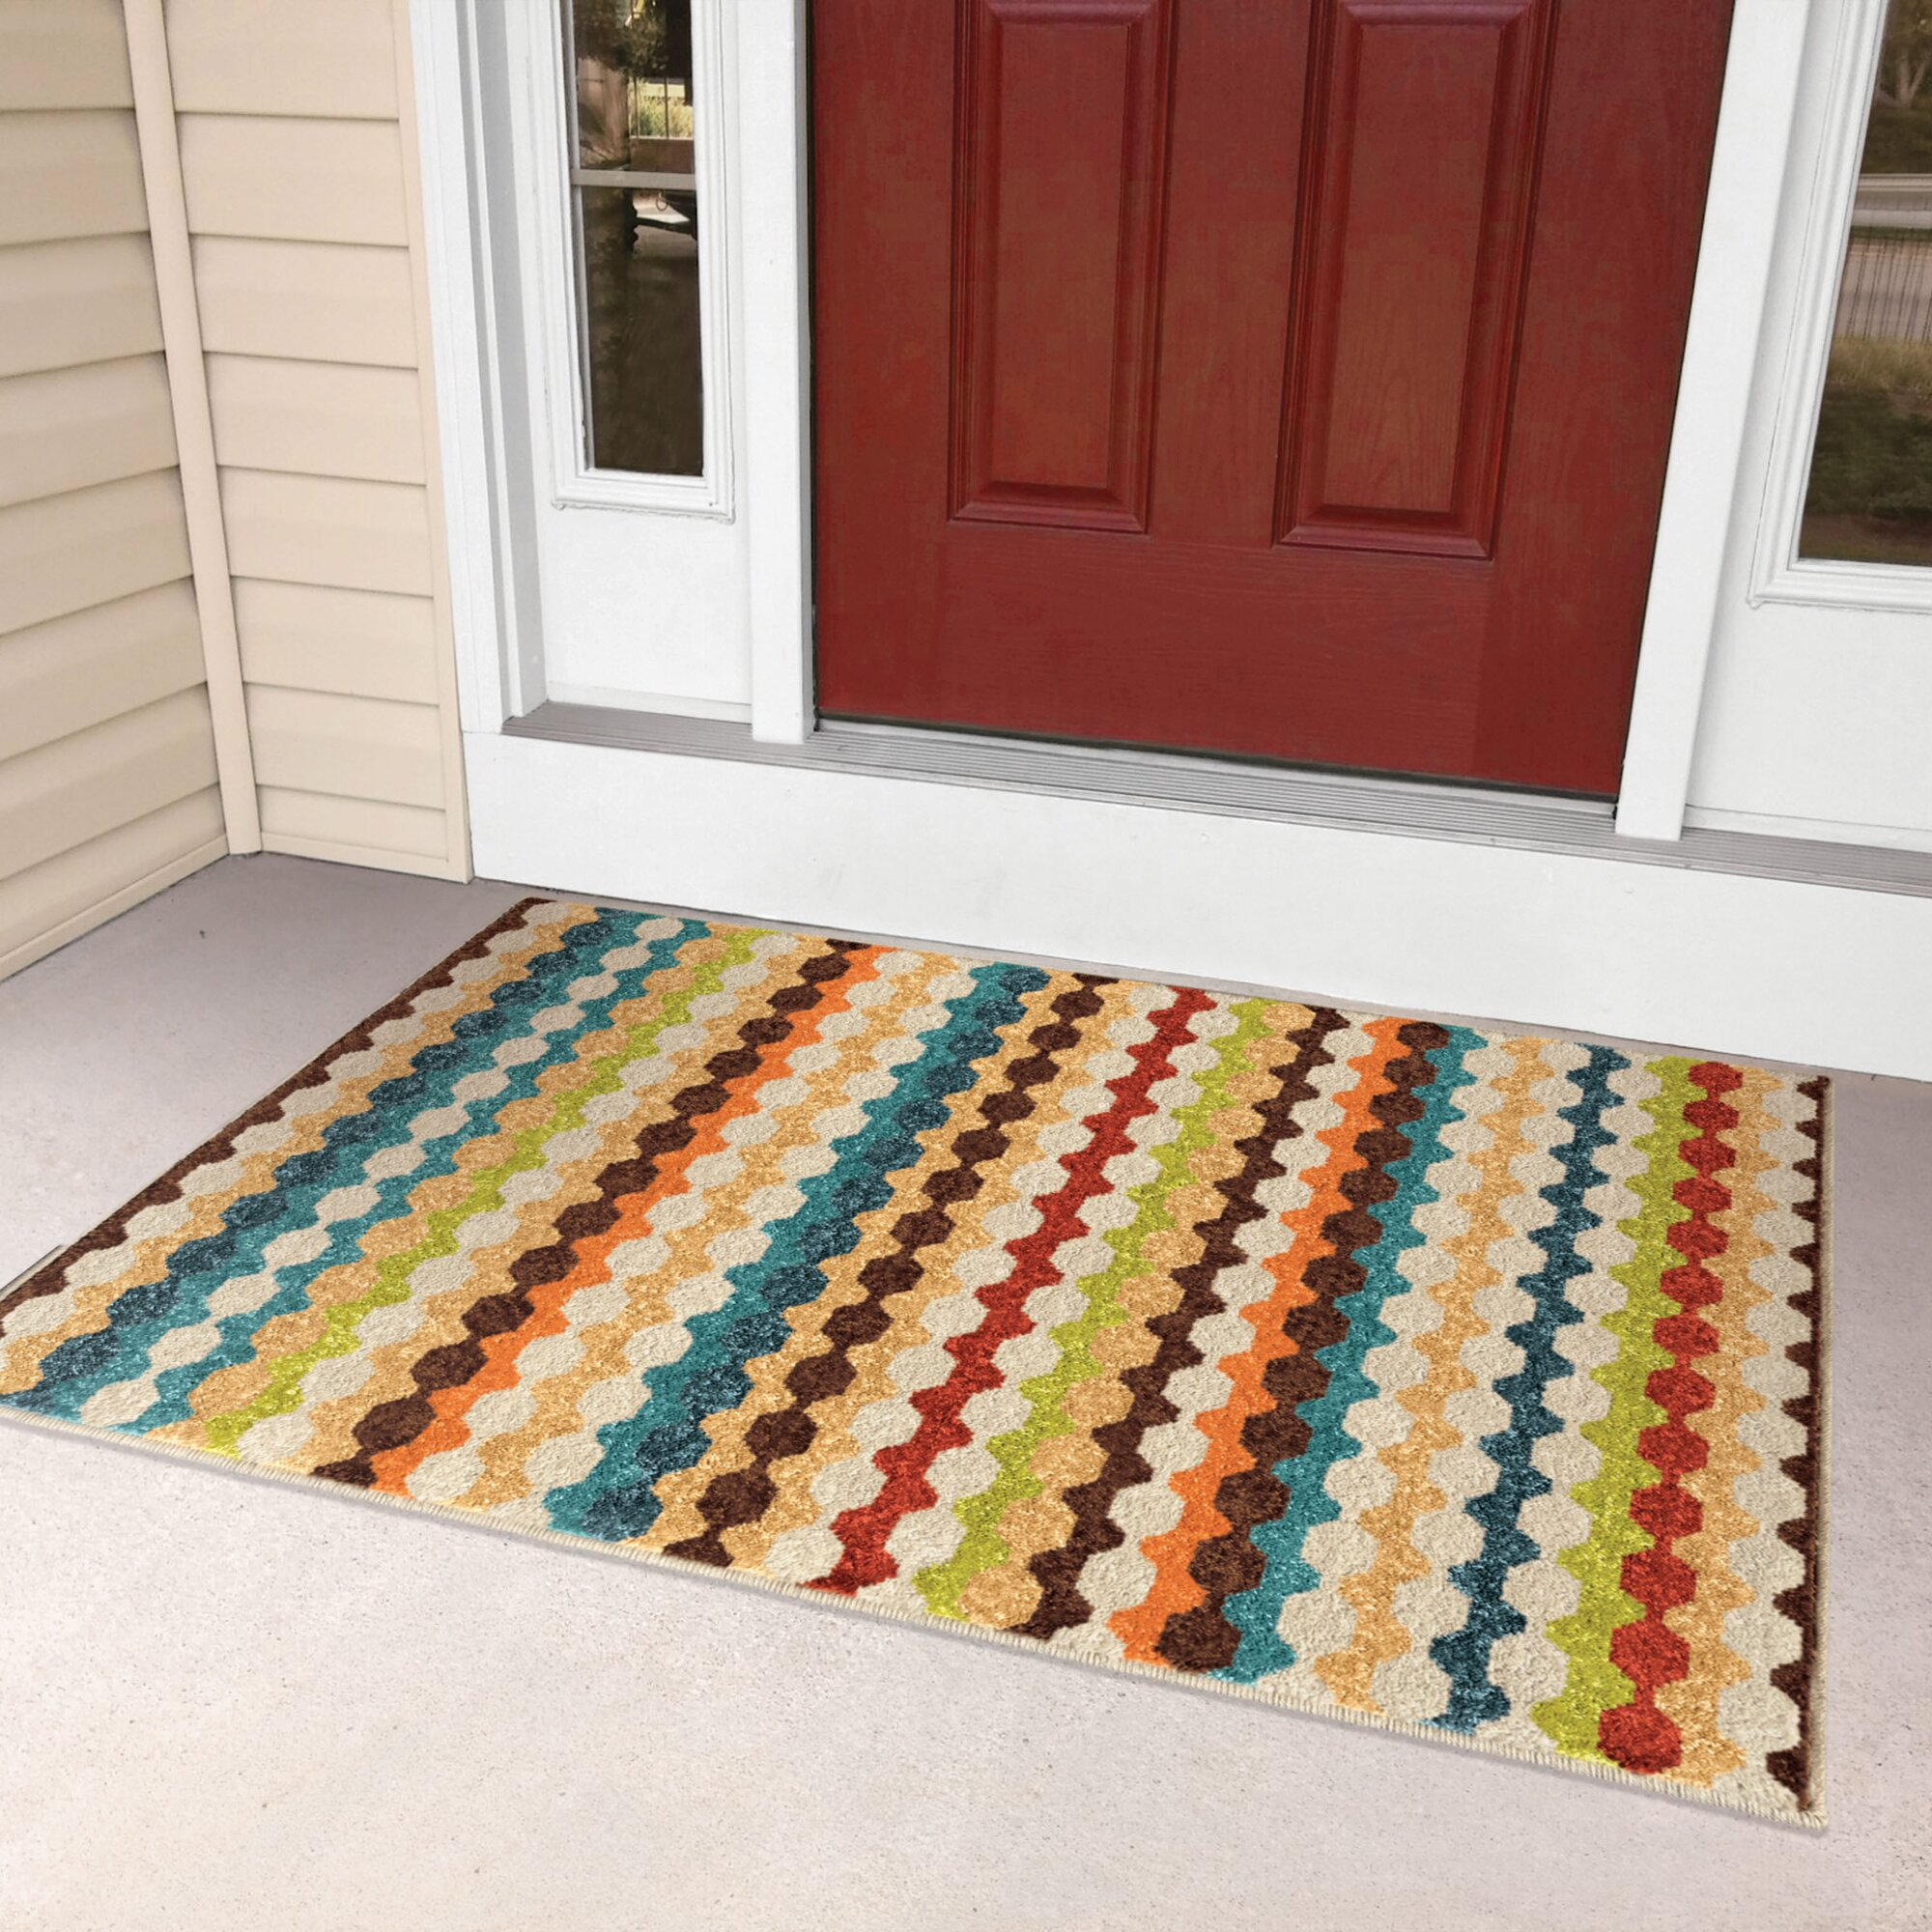 Zipcode design calhoun green beige indoor outdoor area rug for Indoor outdoor carpet green